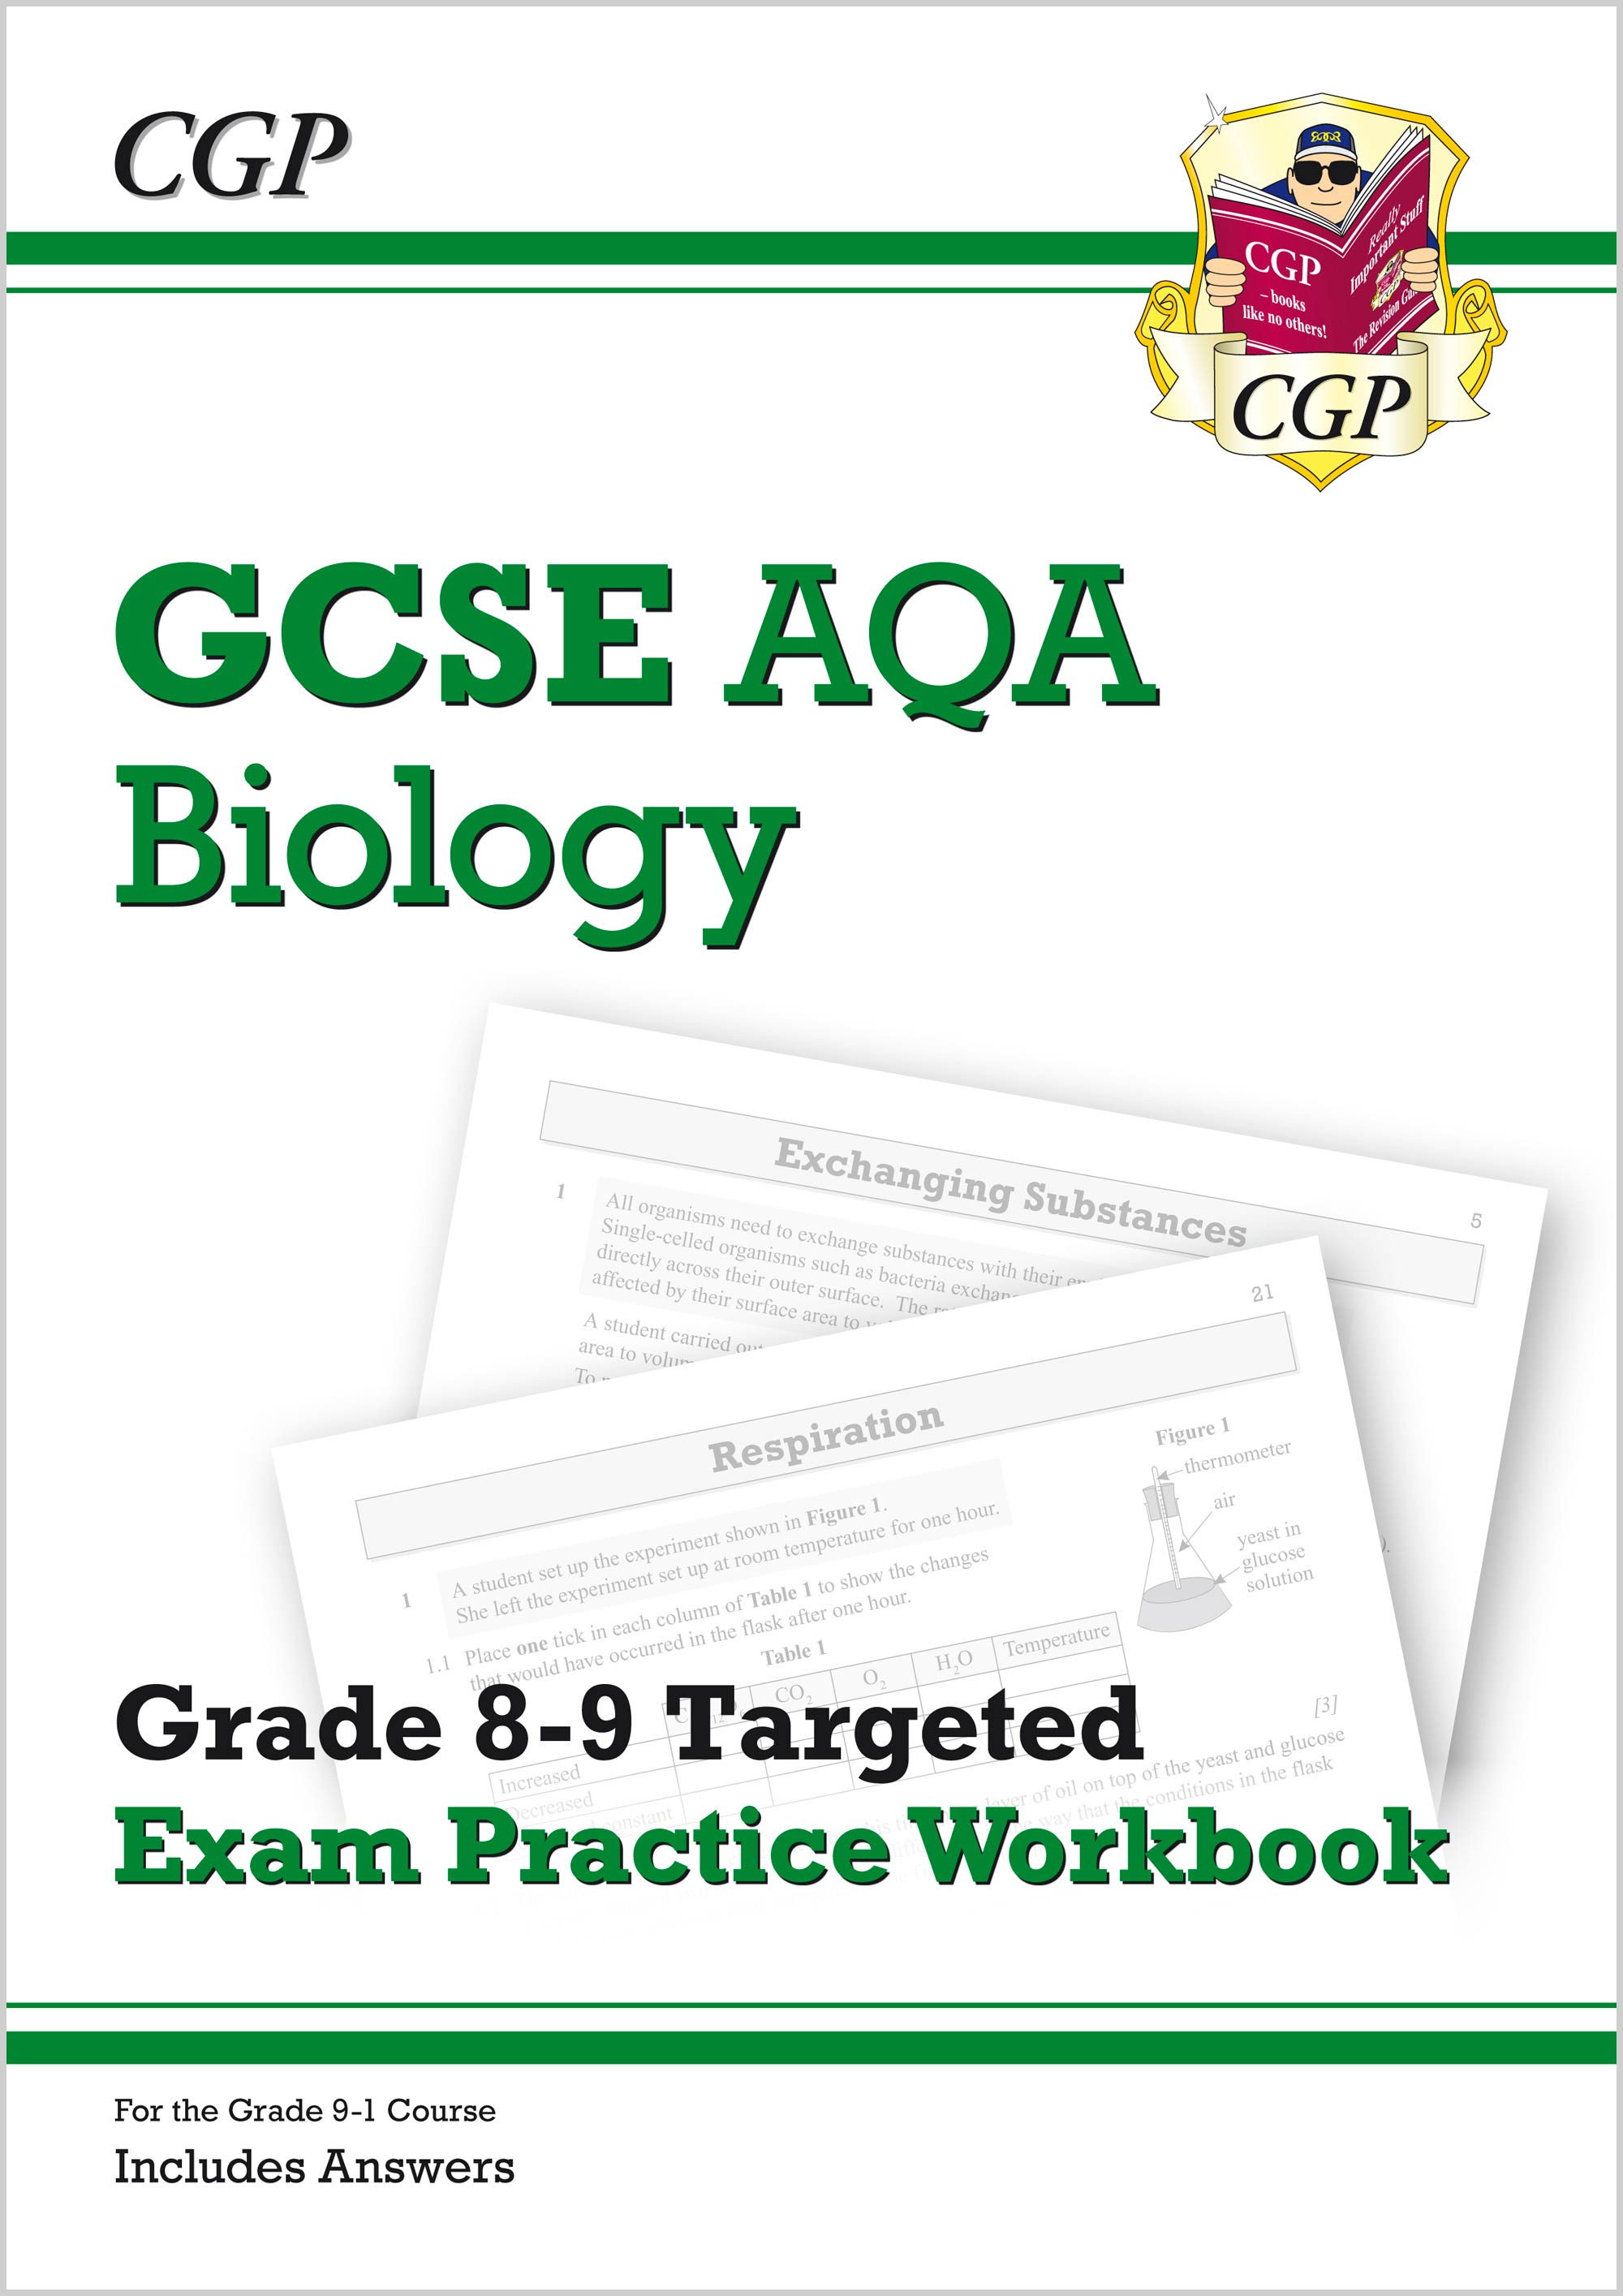 BA9Q41 - GCSE Biology AQA Grade 8-9 Targeted Exam Practice Workbook (includes Answers)